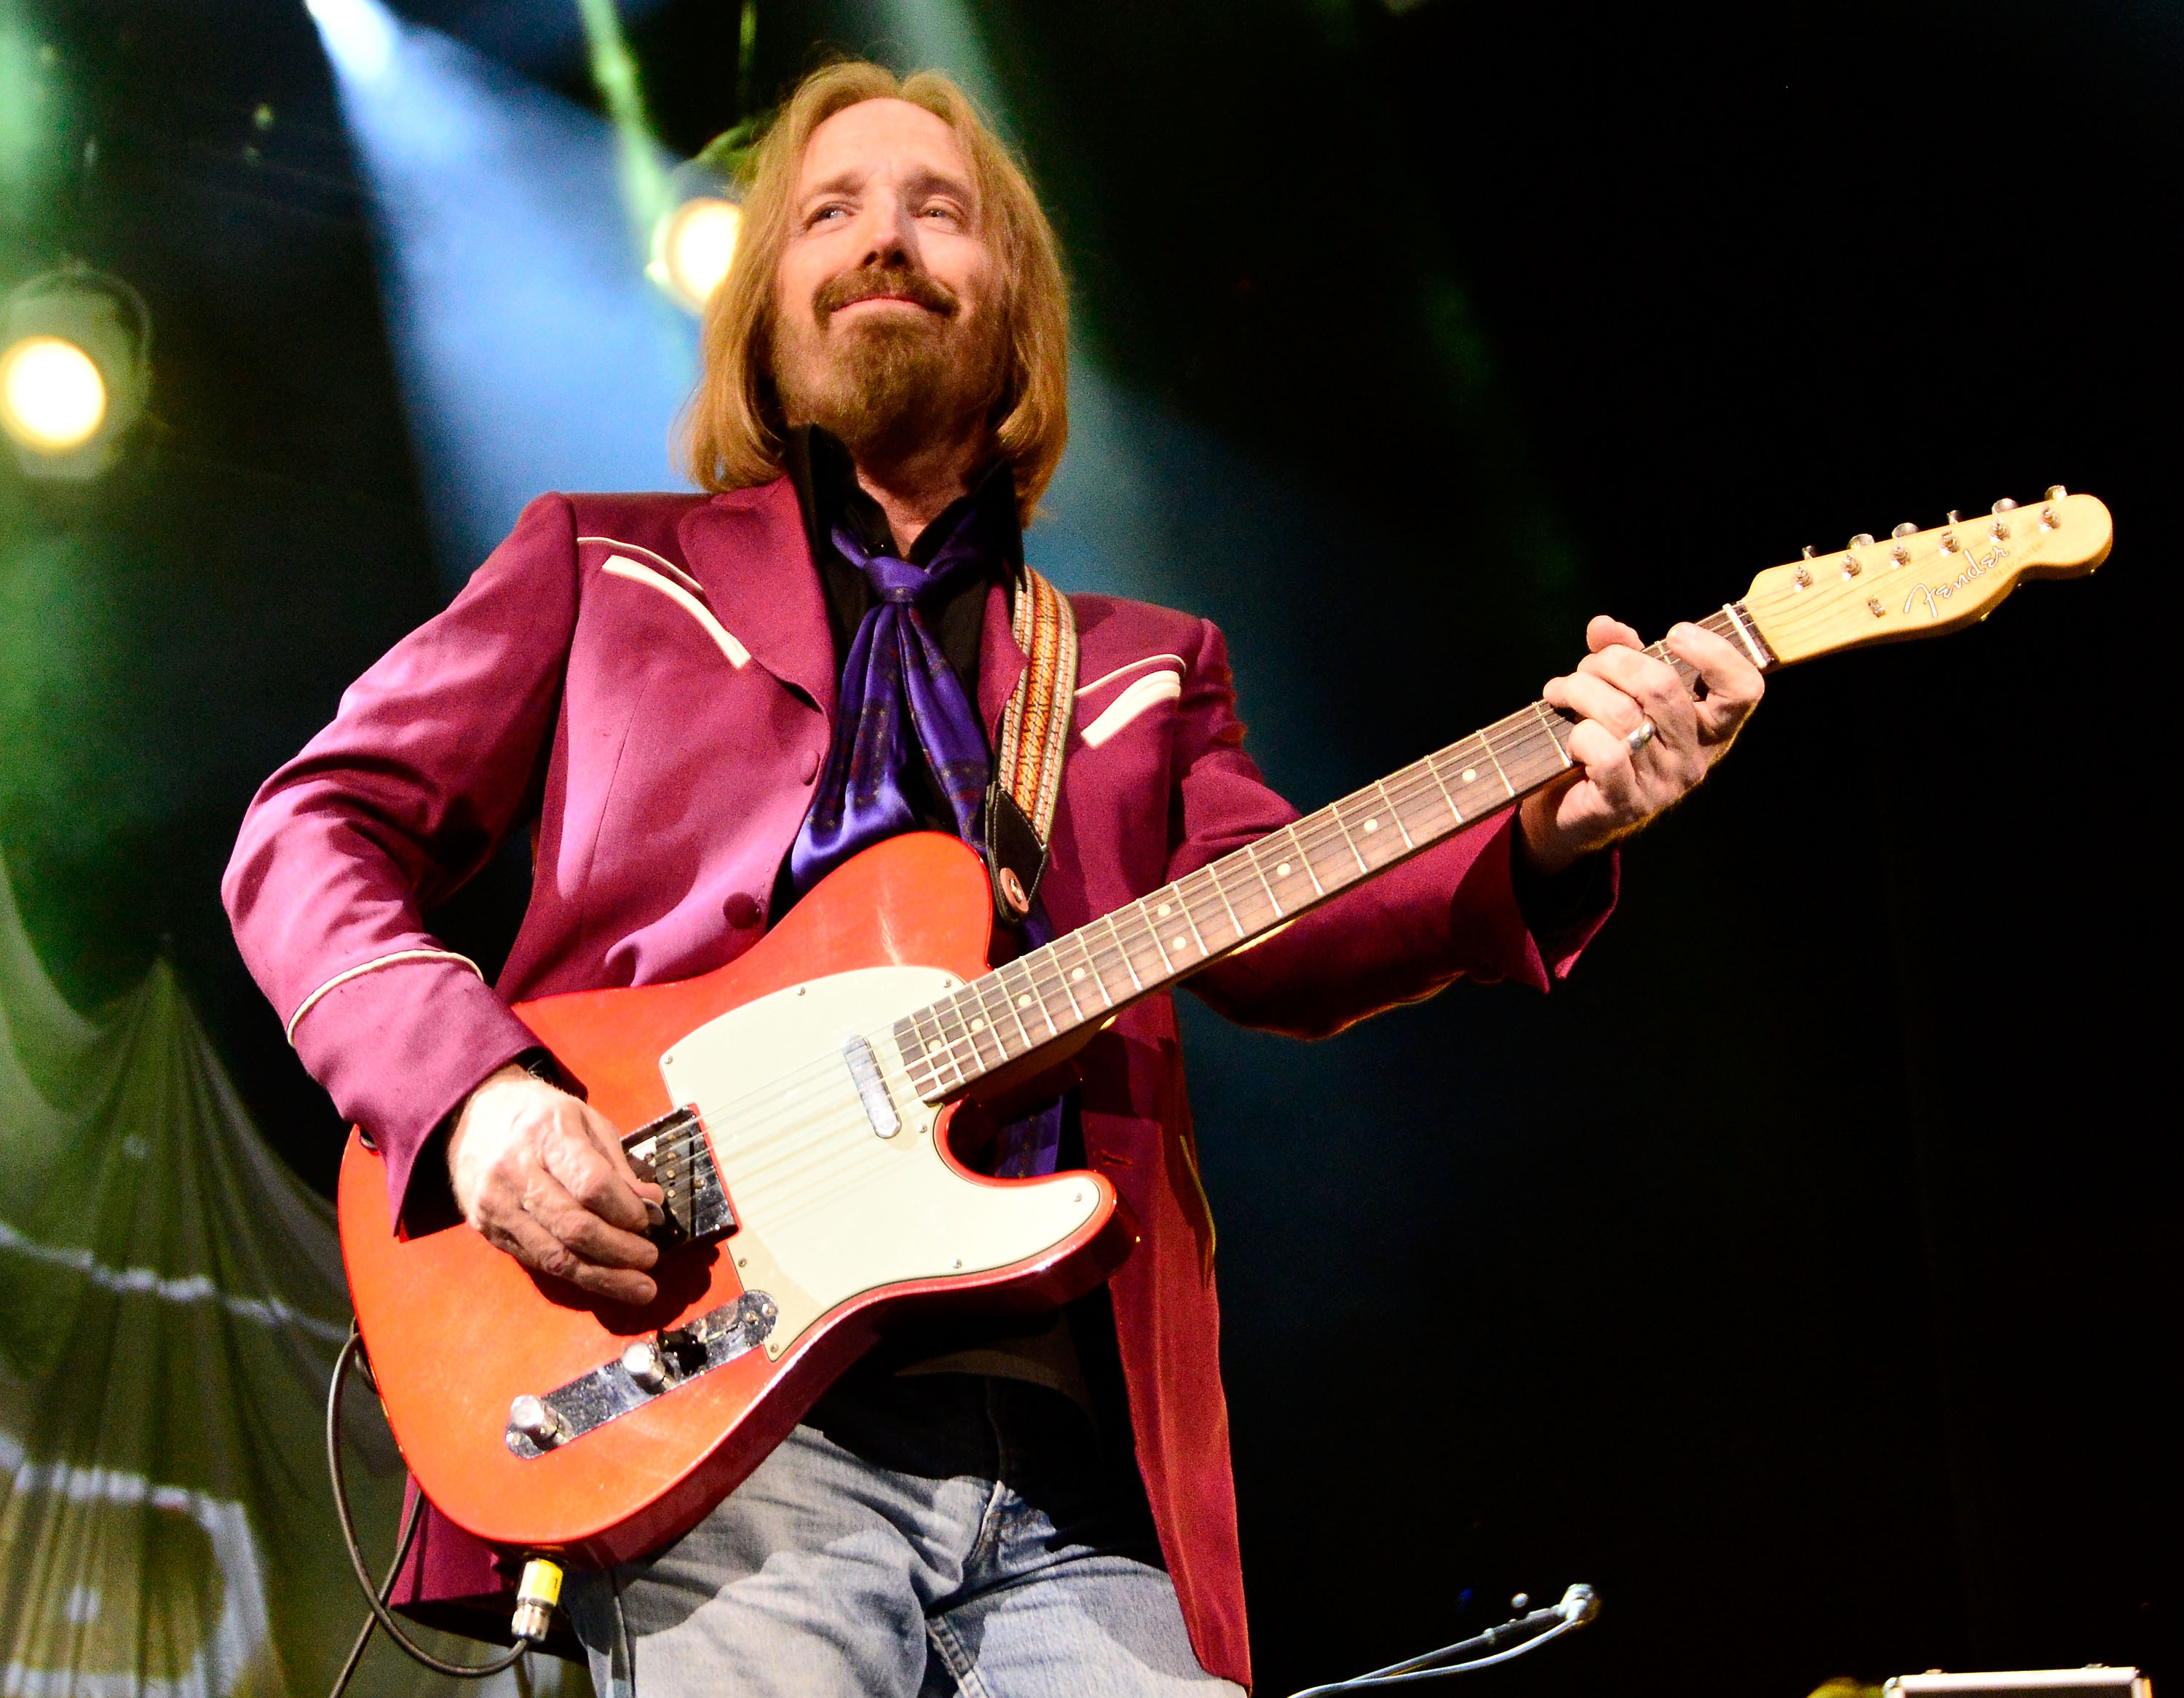 Tom Petty and The Heartbreakers' First Career Collection Out Today